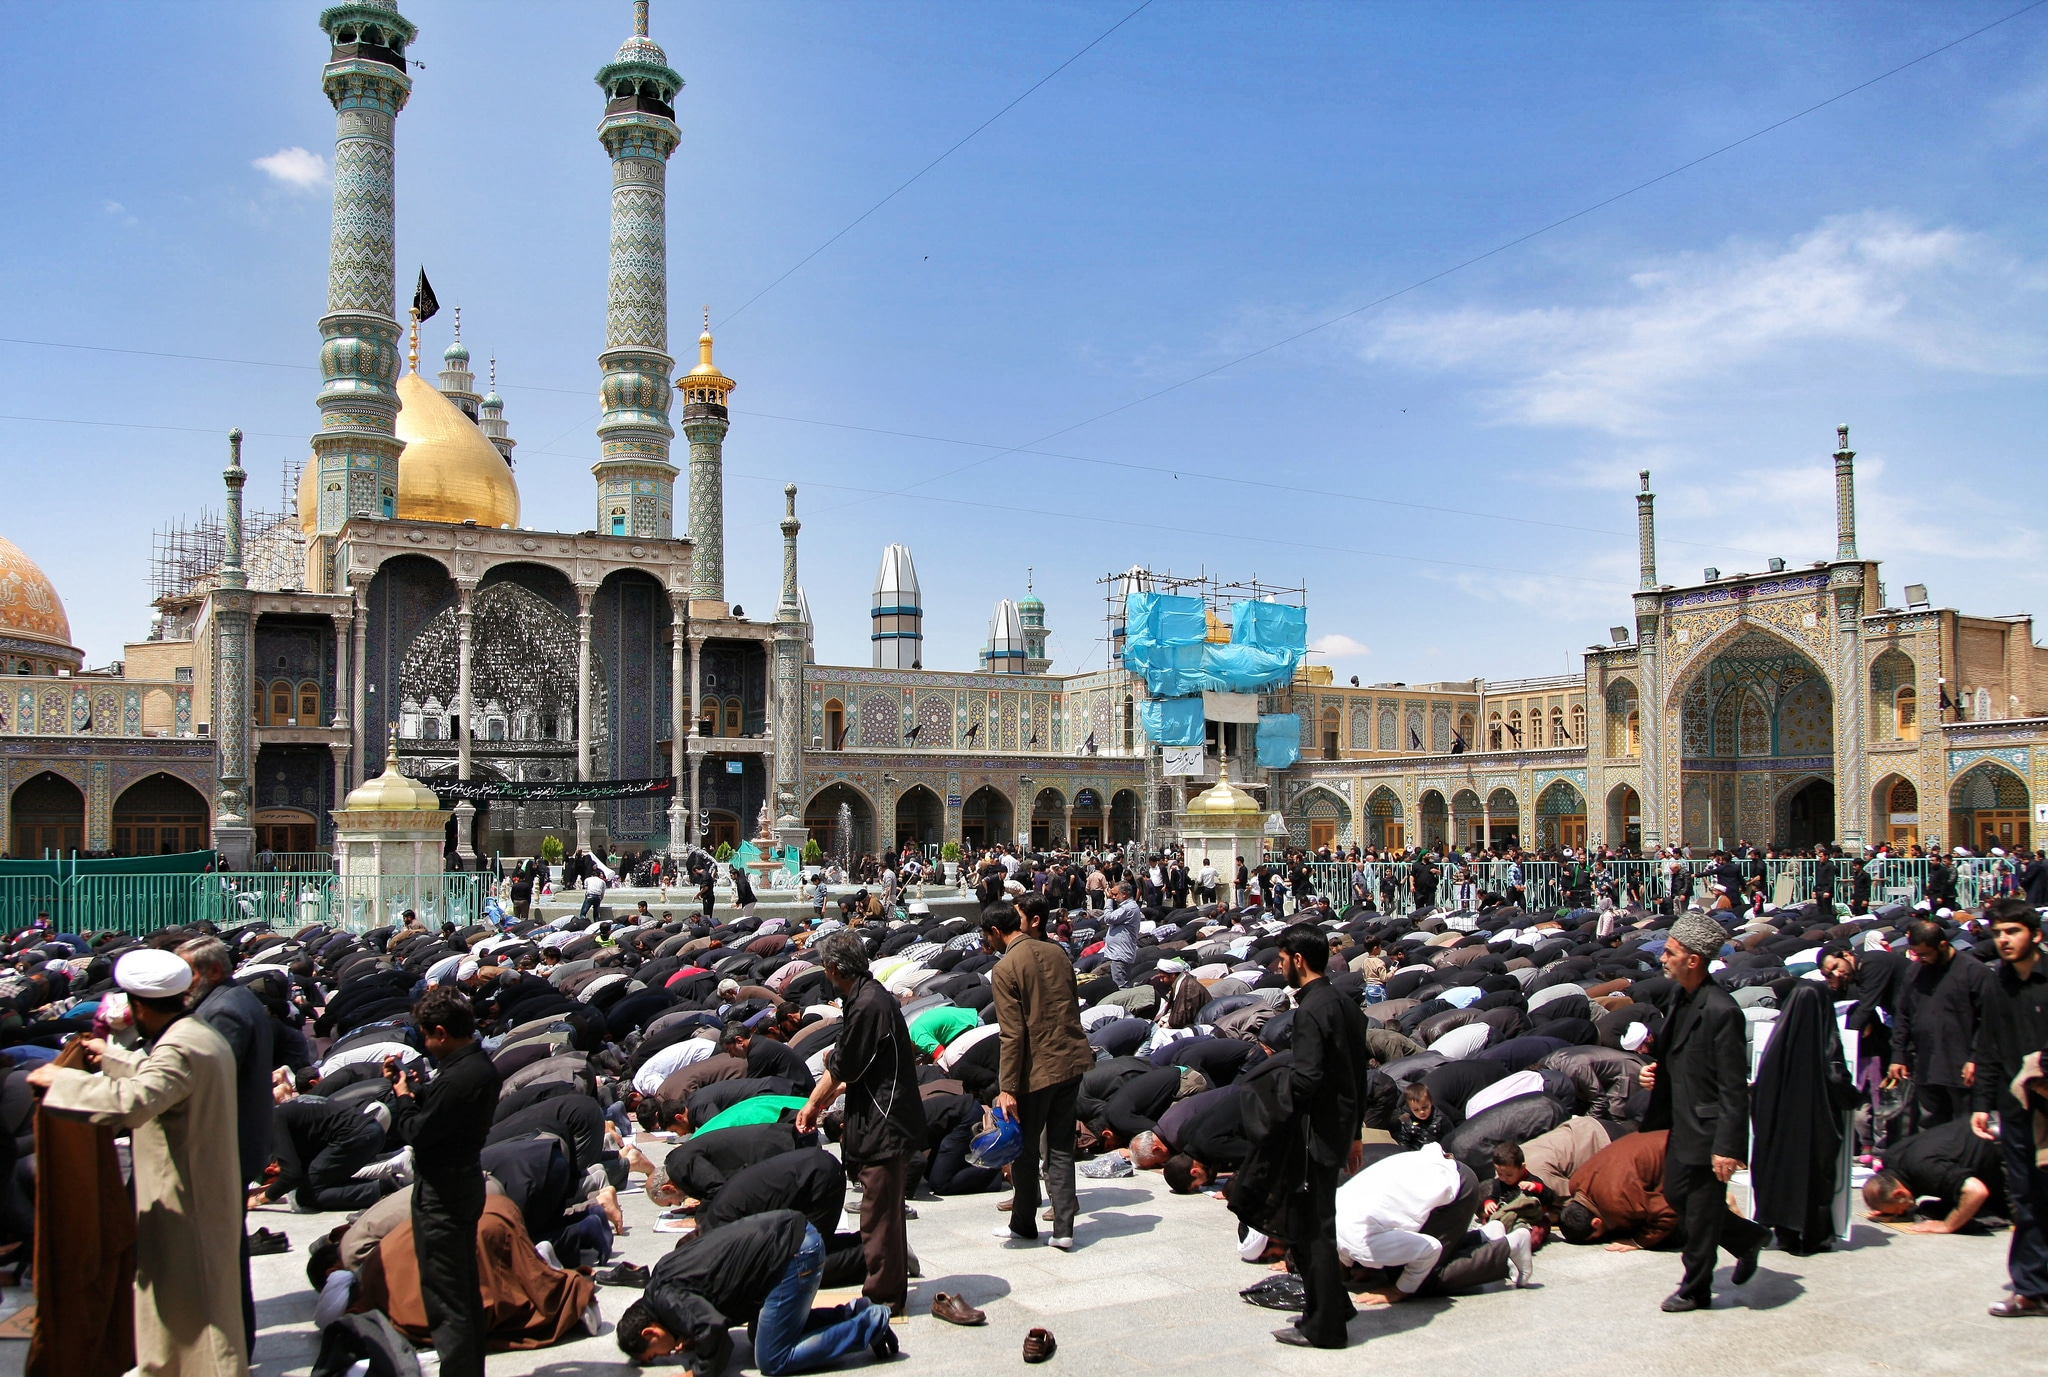 Two week Iran travel itinerary - Men praying at Hazrat-e Masumeh shrine in Qom, Iran - Lost With Purpose